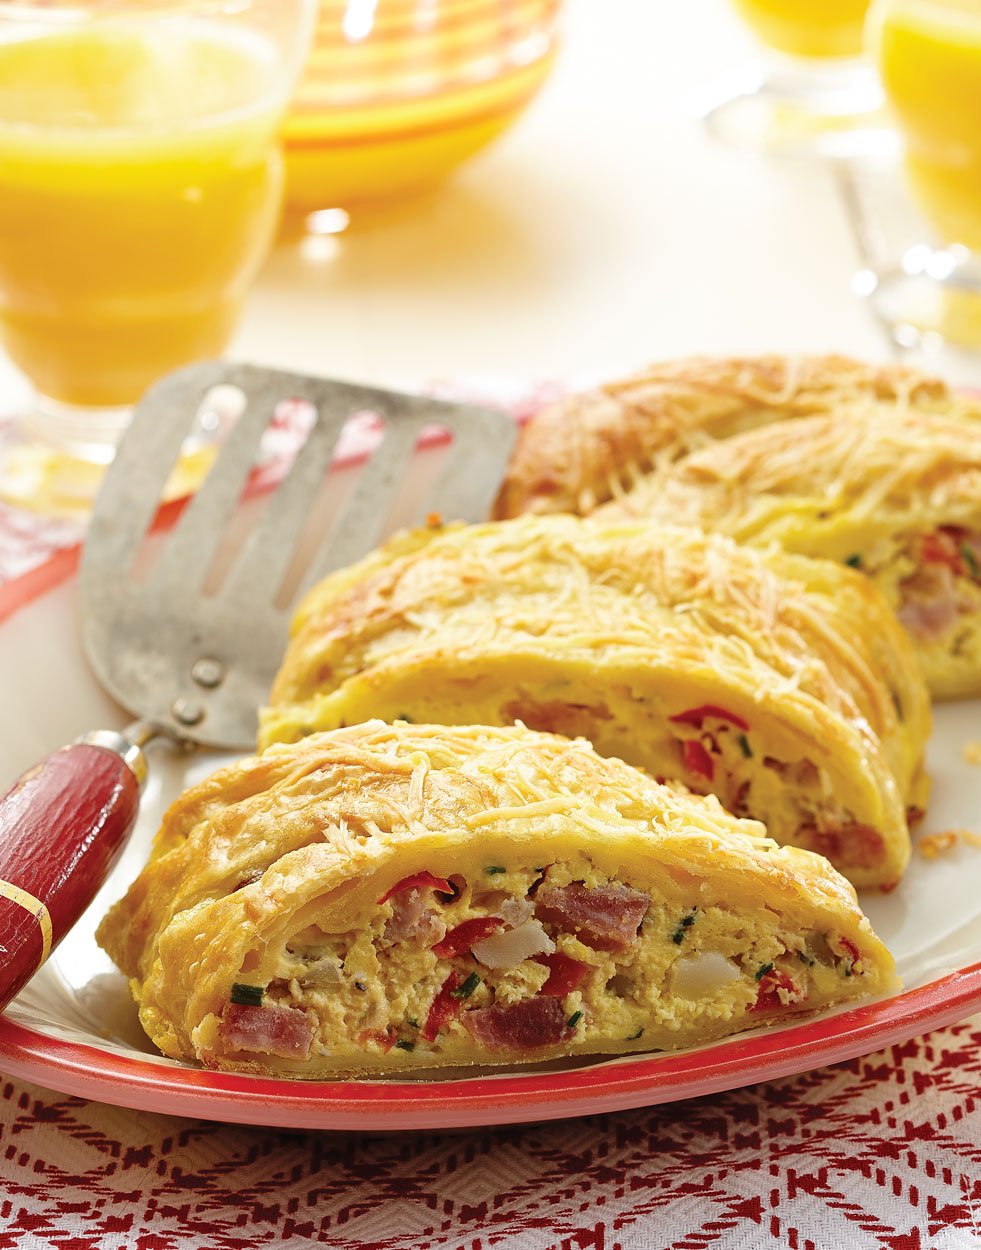 Braided Breakfast Strudel